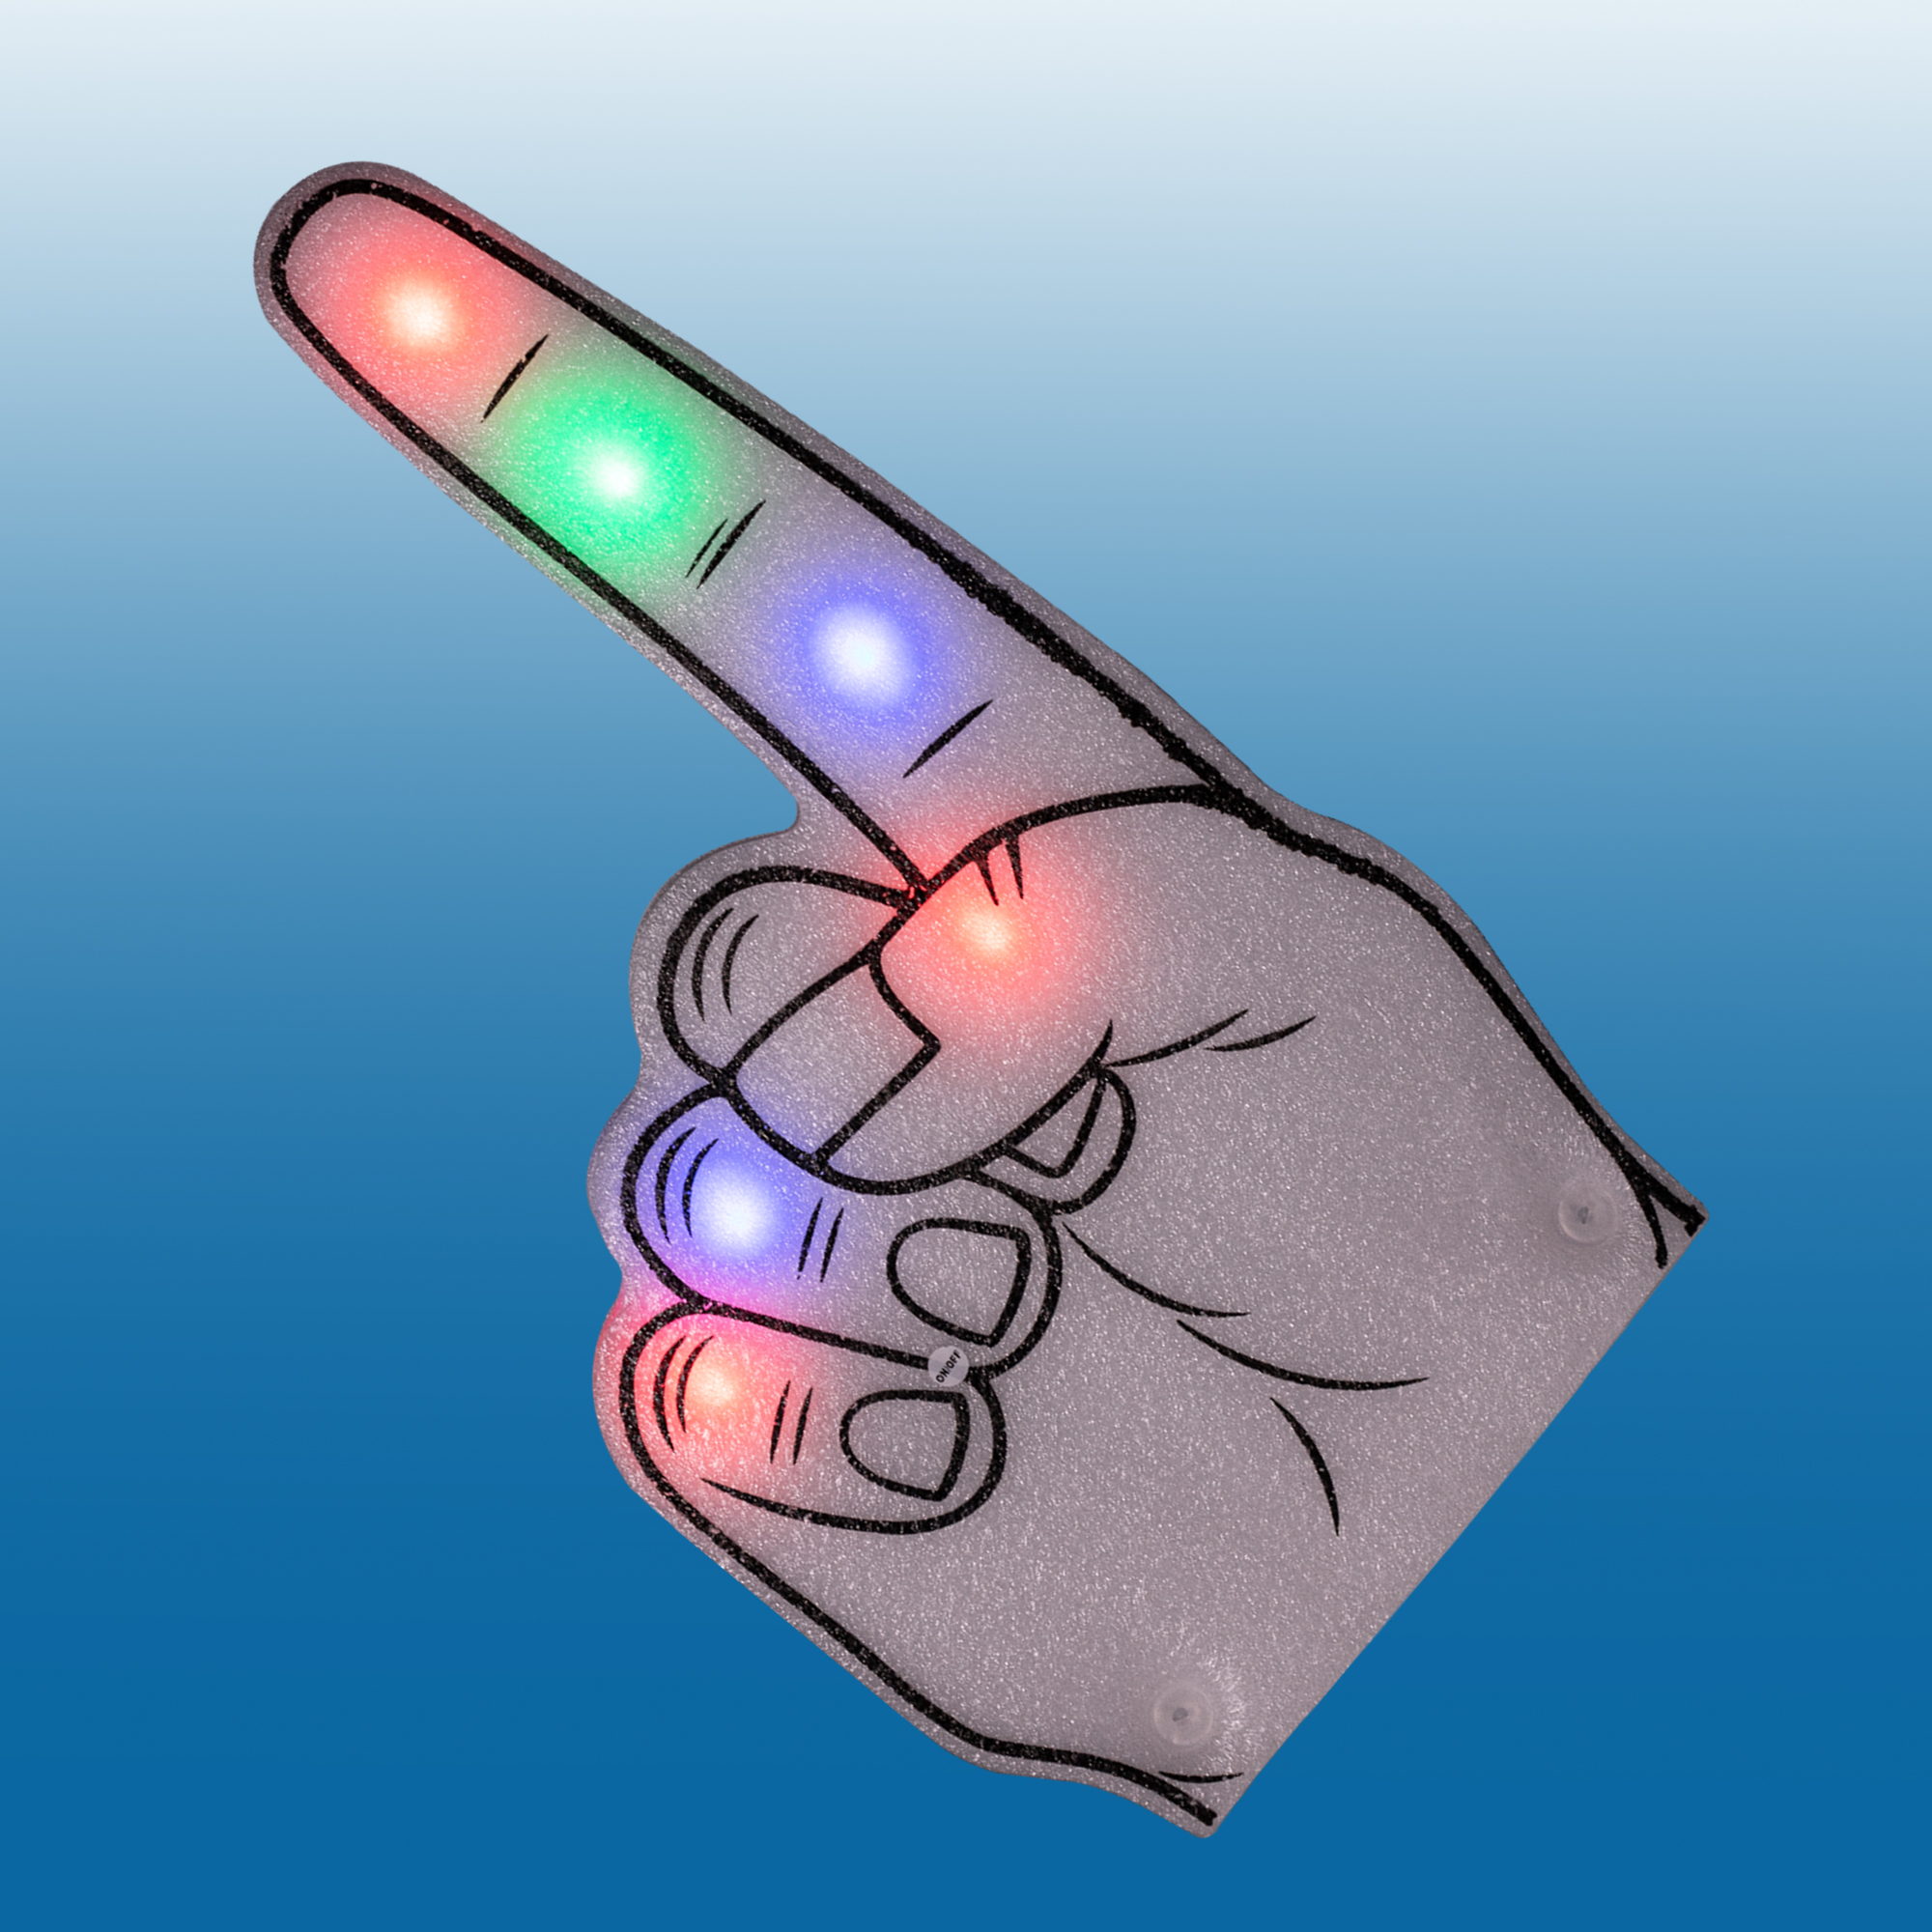 Fun Central AI631 LED Light Up Foam Finger - Multicolor